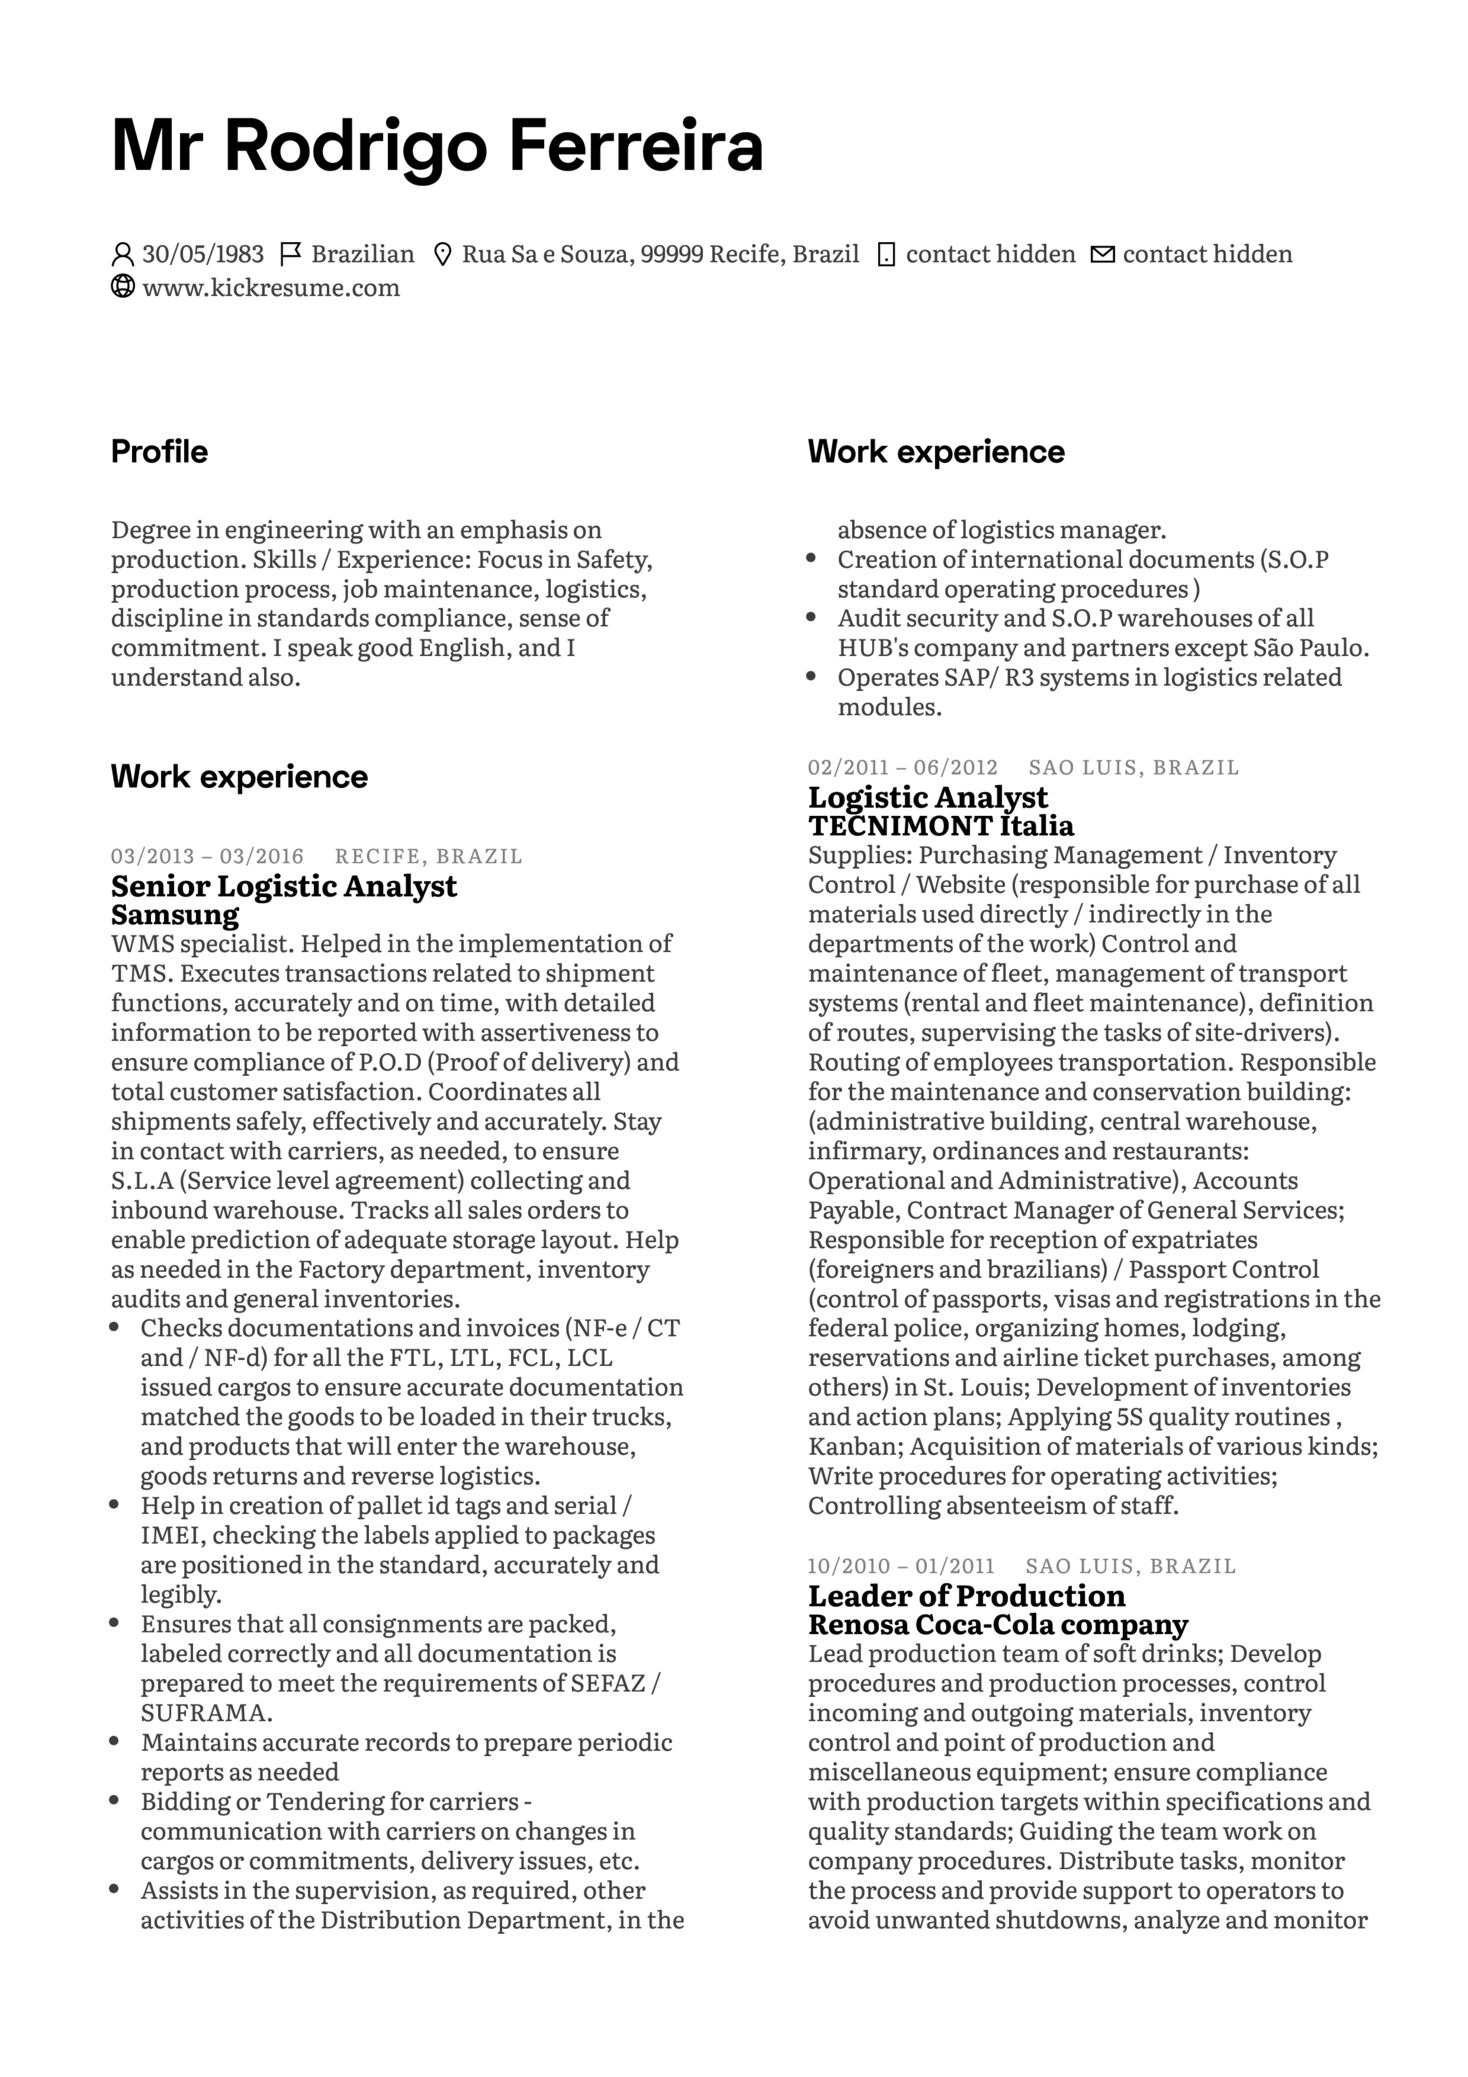 Leader of Production at Samsung Resume Sample (parte 1)